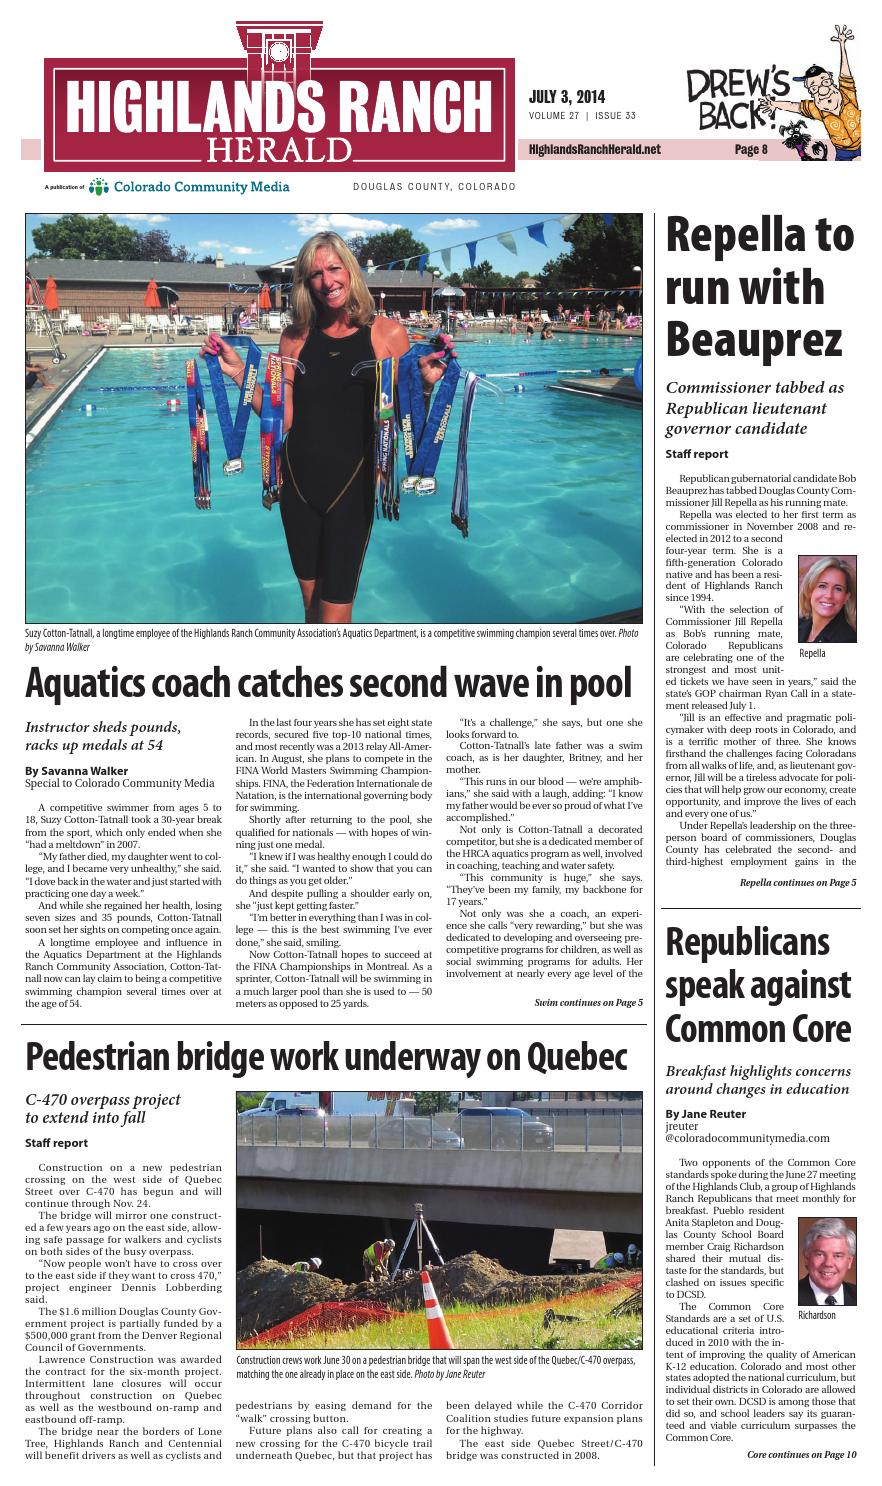 Highlands ranch herald 0703 by Colorado Community Media - issuu